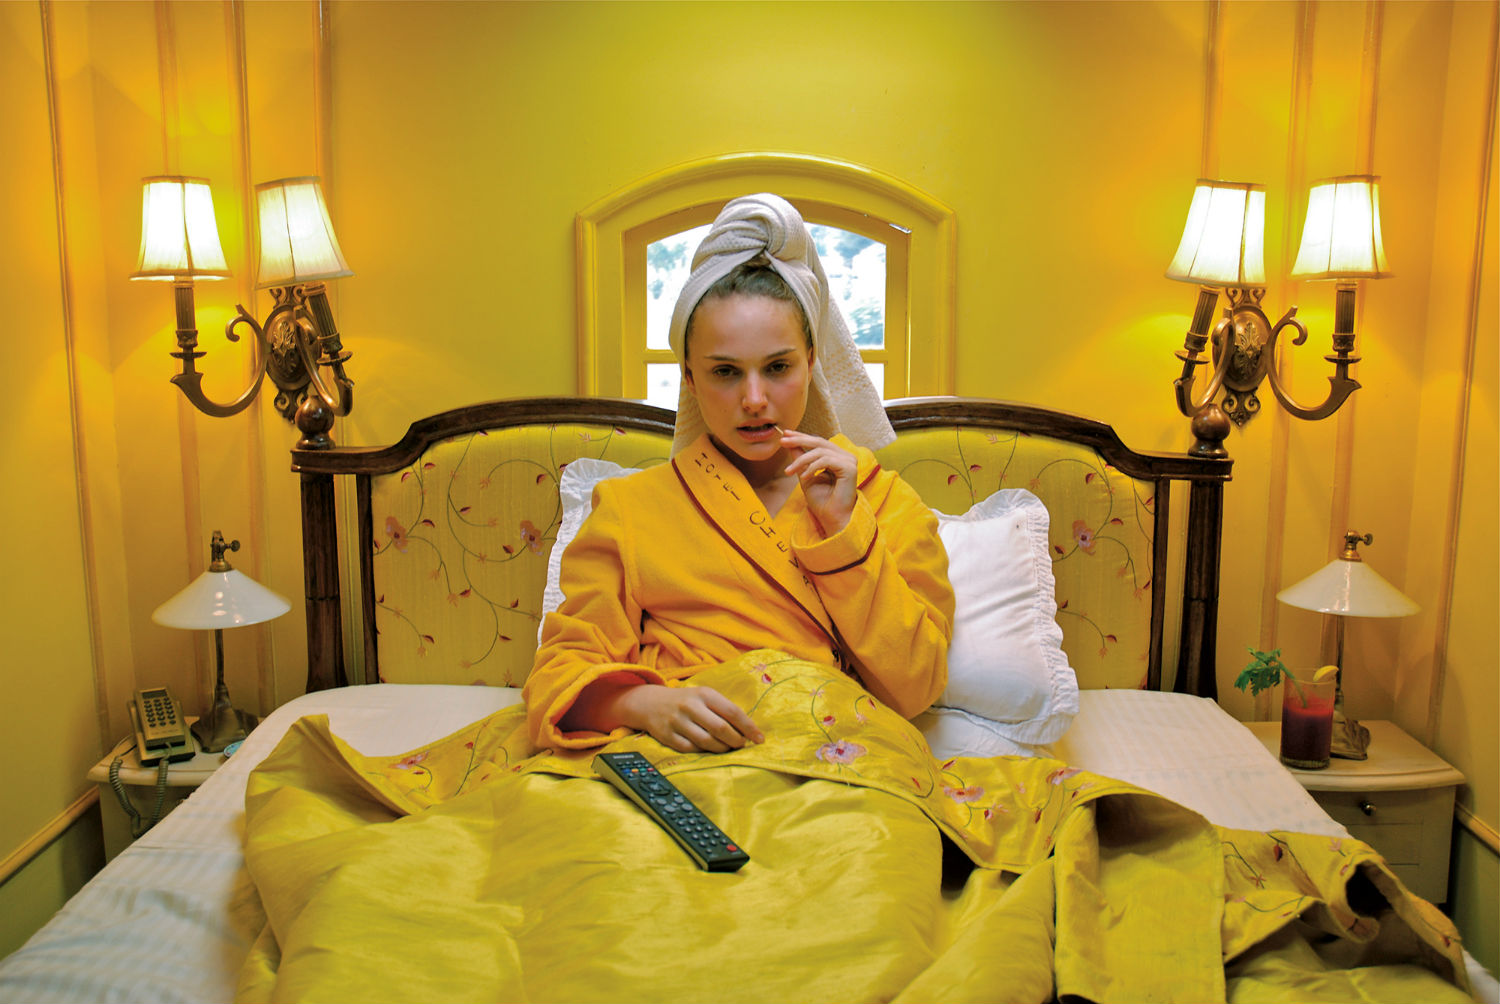 idesign wes anderson 07